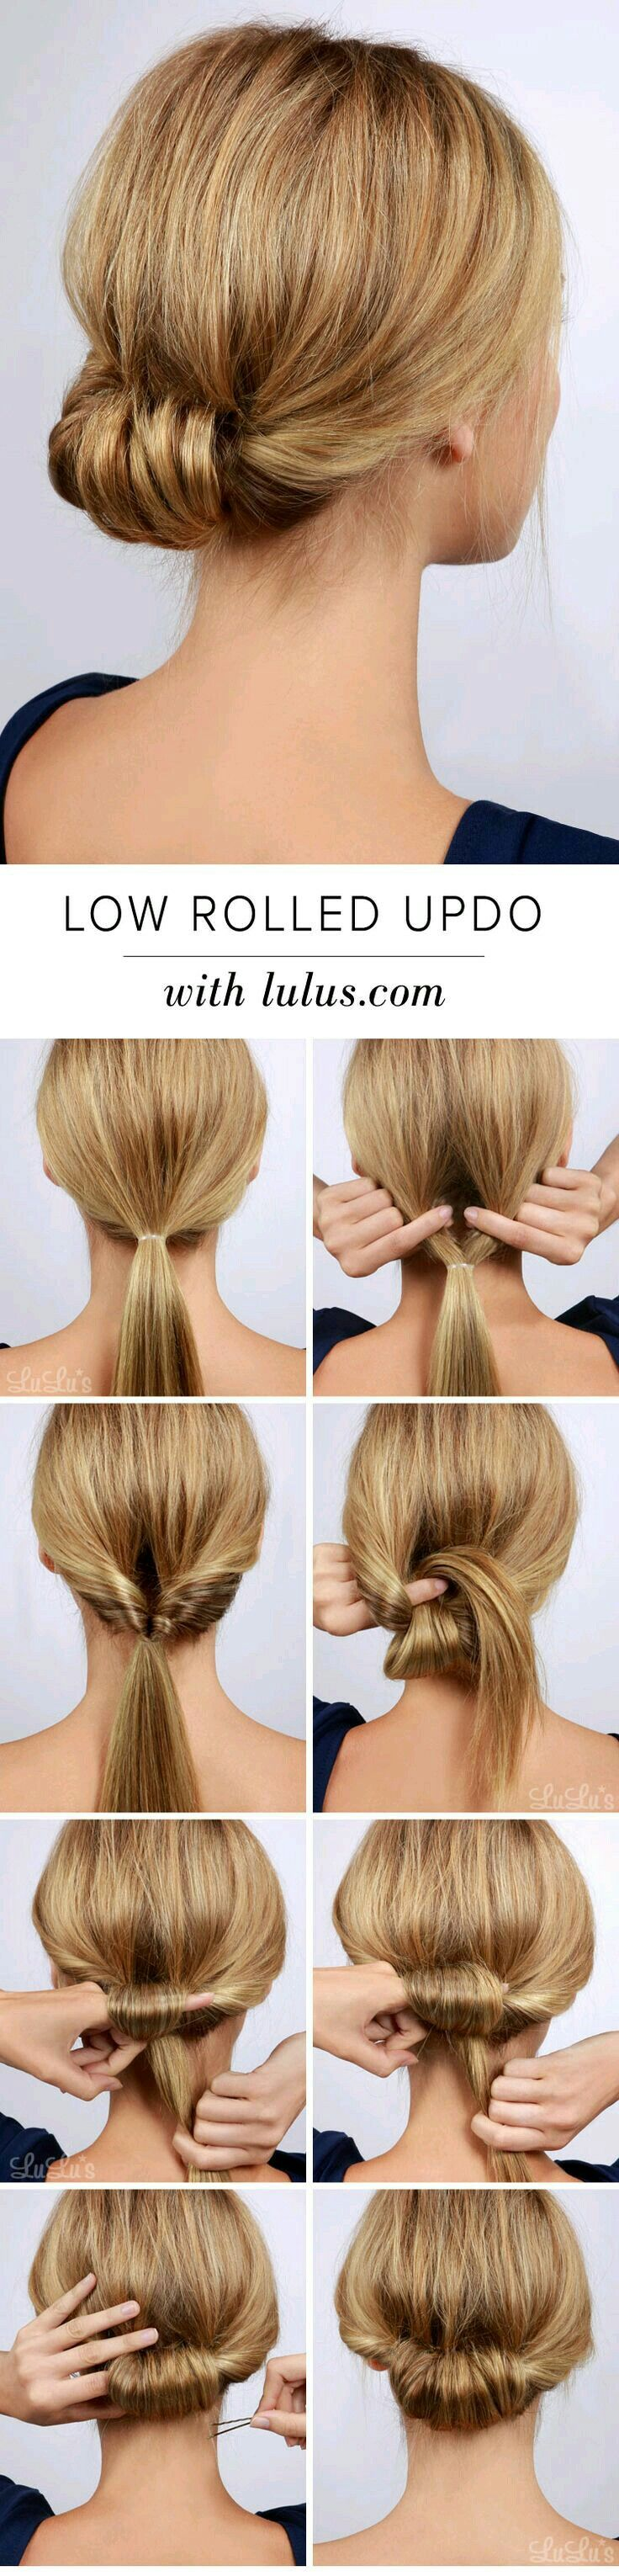 Pin by amy on hair pinterest hair style easy hairstyles and